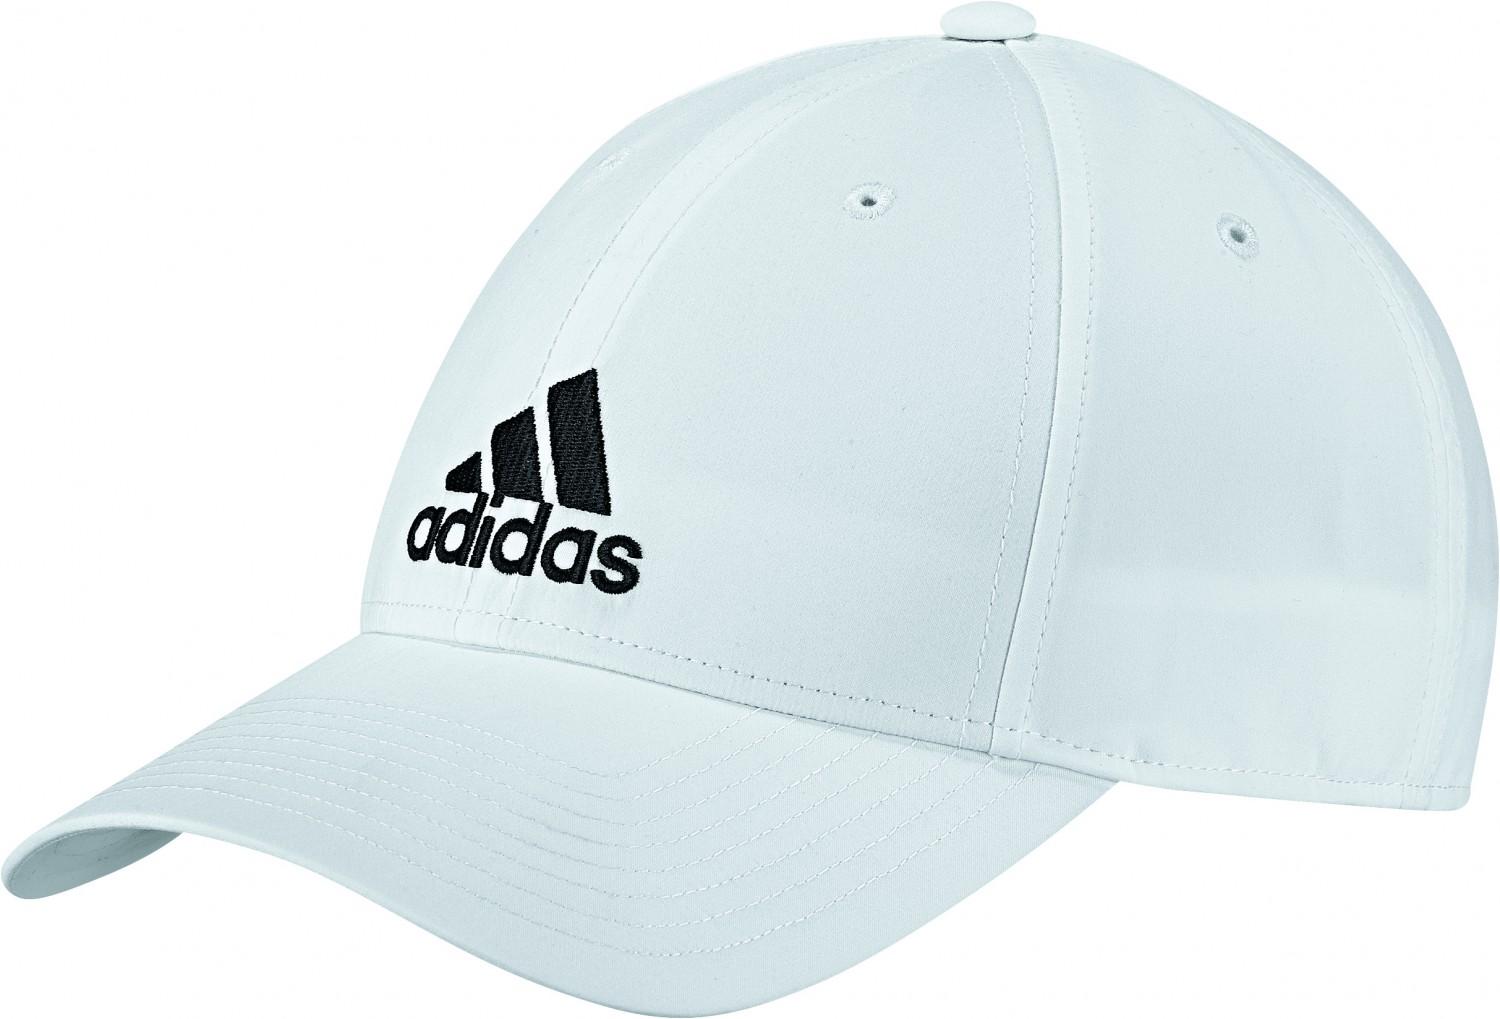 9aff4aaeb01 adidas CLASSIC LIGHTWEIGHT EMBROIDERED   baseball cap kids ladies white